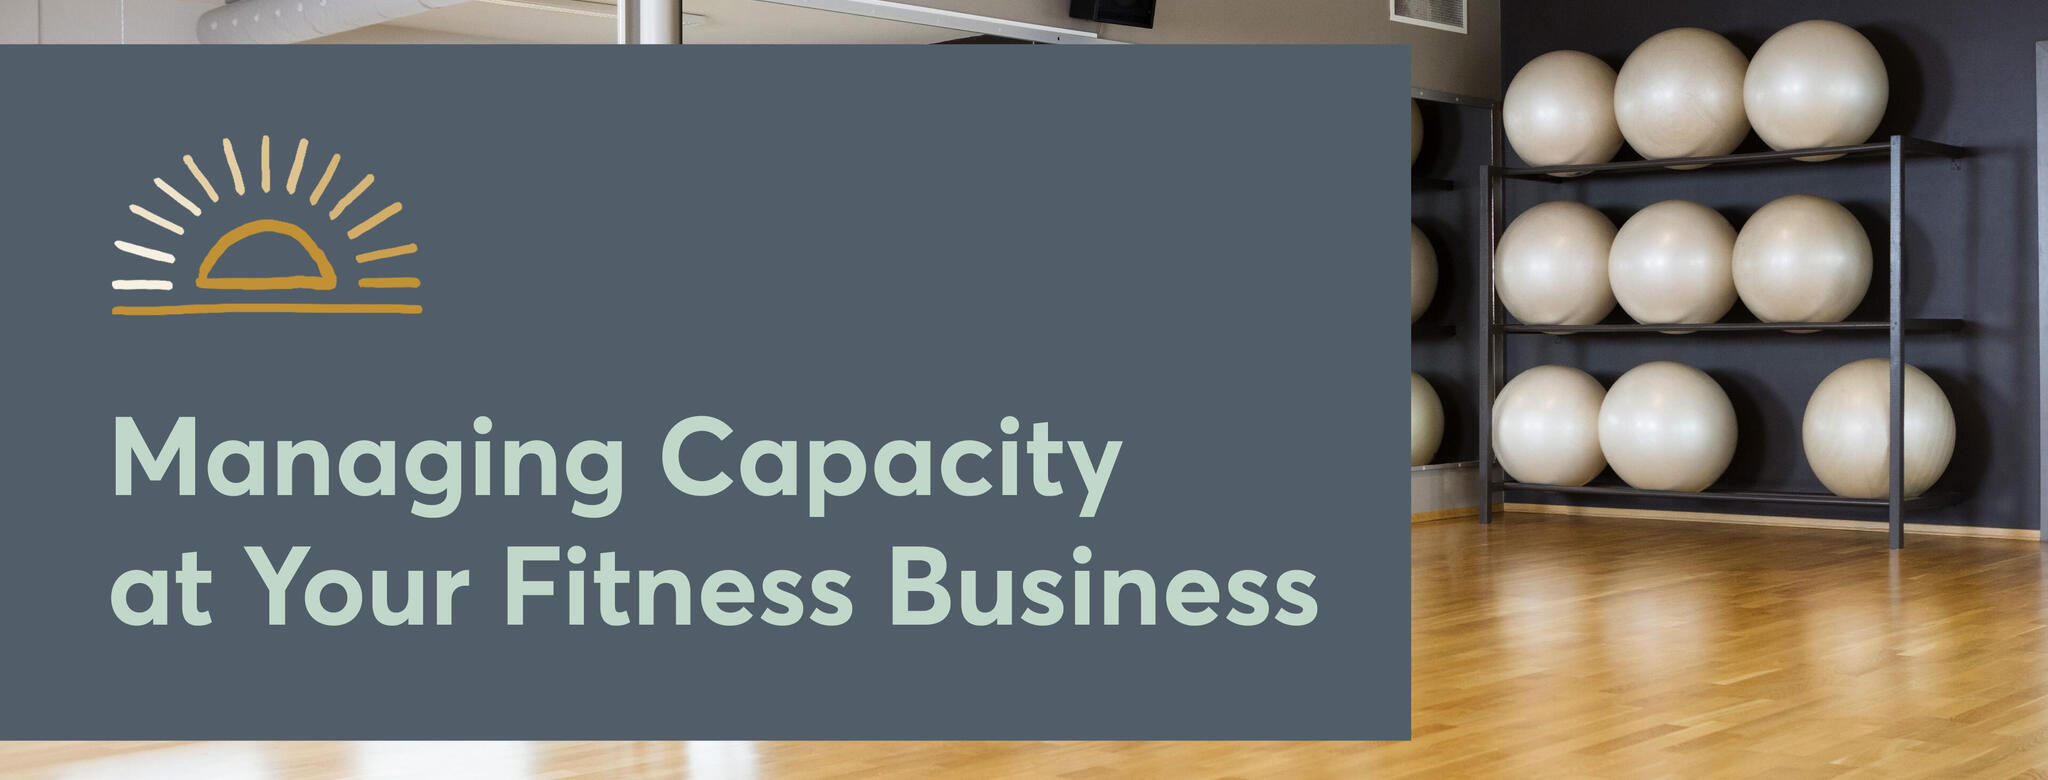 Managing capacity at your fitness business